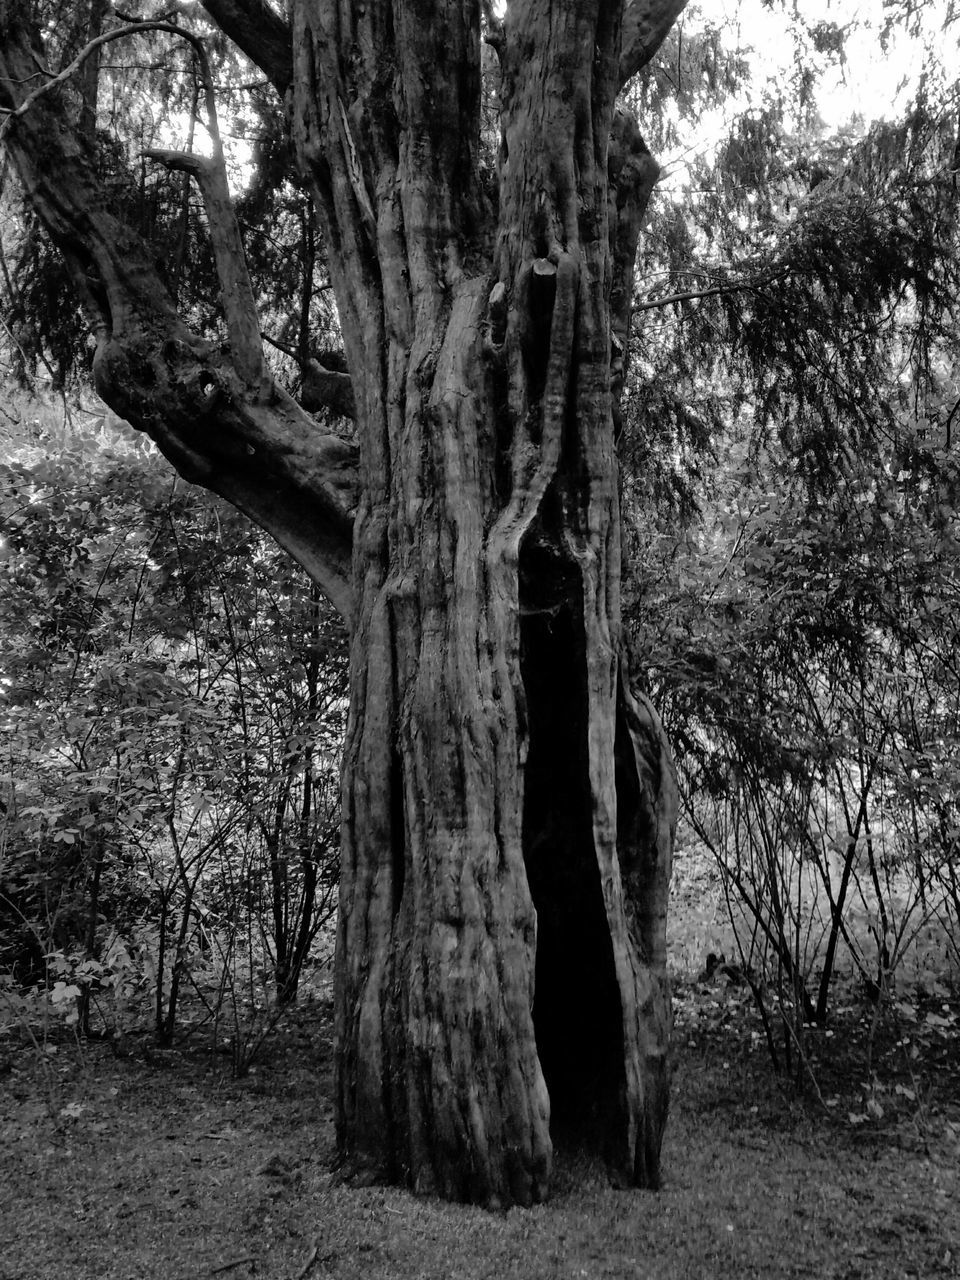 tree, tree trunk, nature, tranquility, day, no people, growth, forest, outdoors, branch, beauty in nature